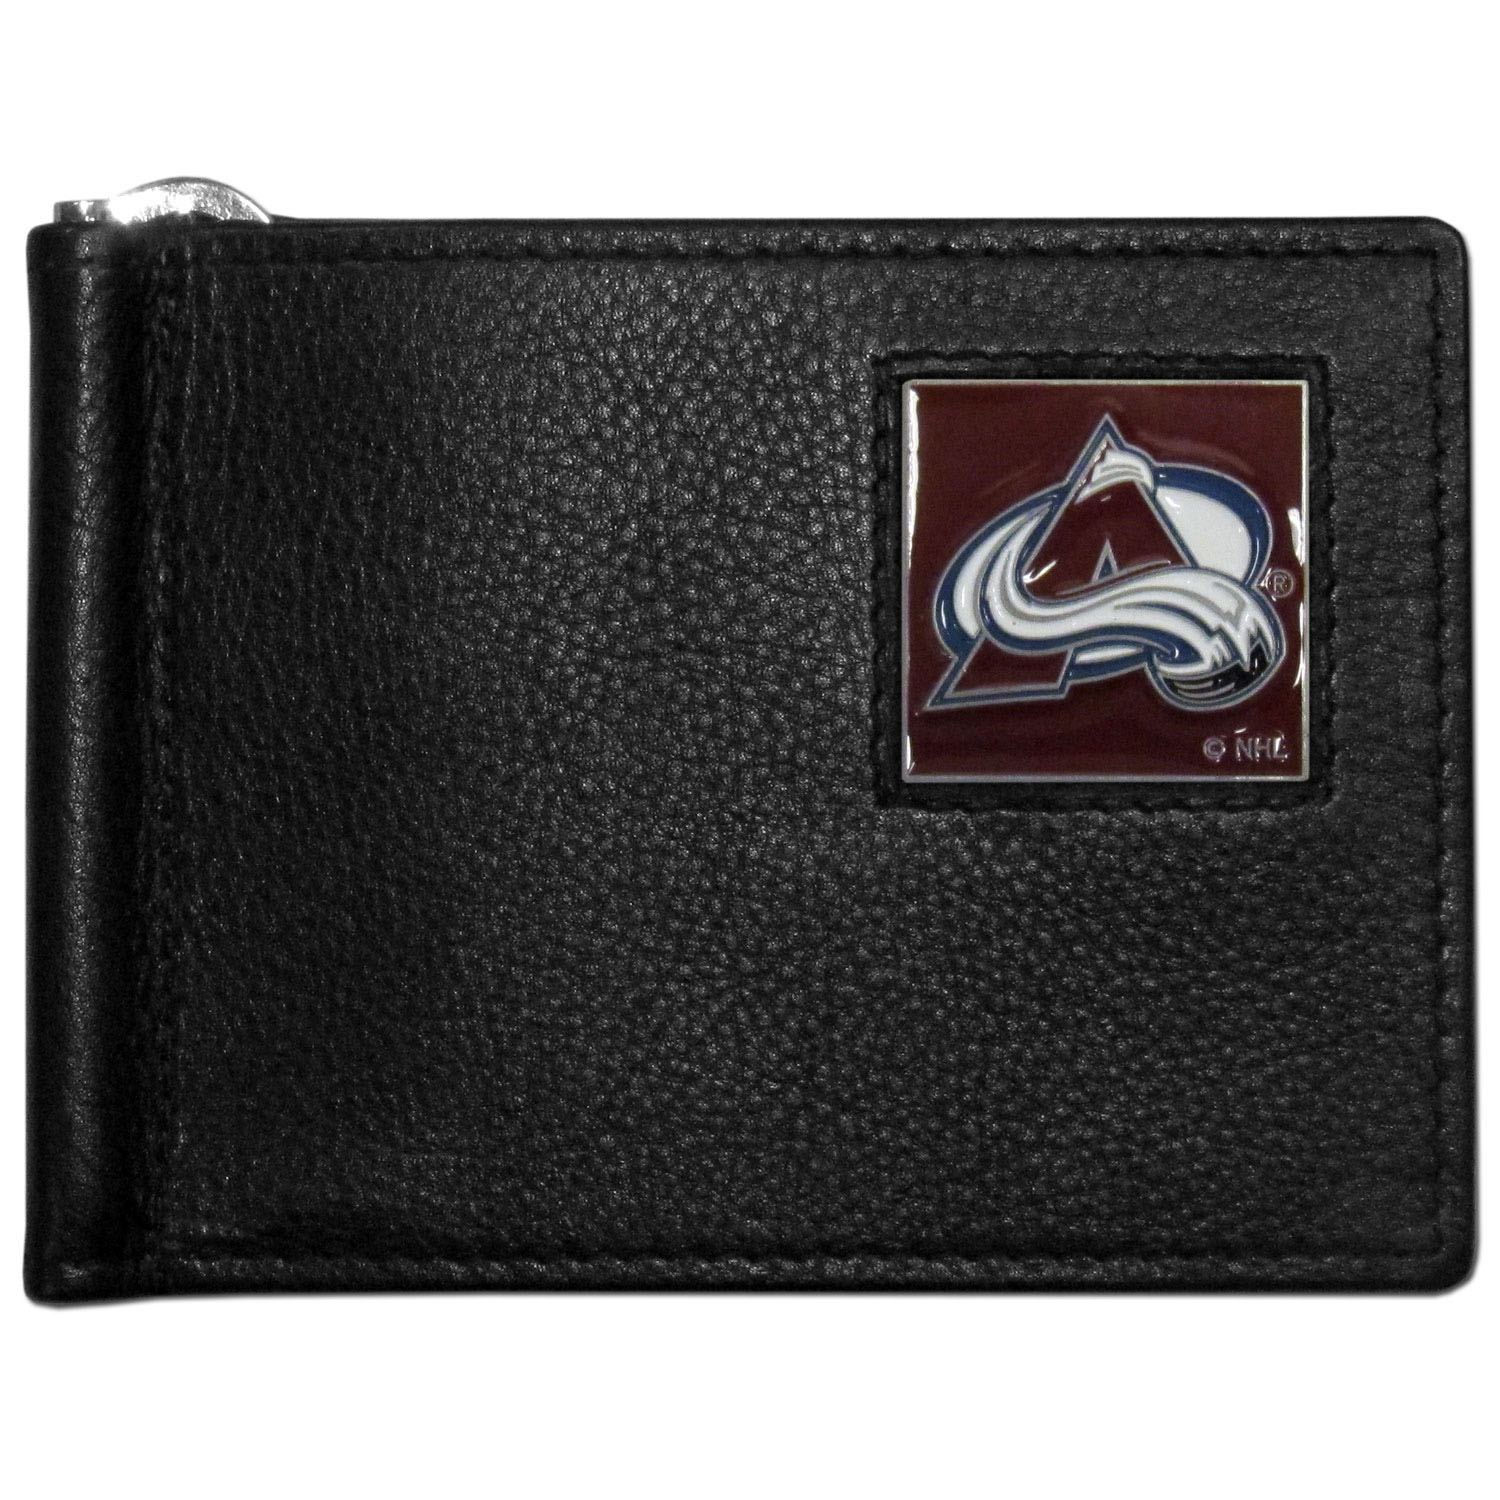 Colorado Avalanche® Leather Bill Clip Wallet - This cool new style wallet features an inner, metal bill clip that lips up for easy access. The super slim wallet holds tons of stuff with ample pockets, credit card slots & windowed ID slot. The wallet is made of genuine fine grain leather and it finished with a metal Colorado Avalanche® emblem. The wallet is shipped in gift box packaging.